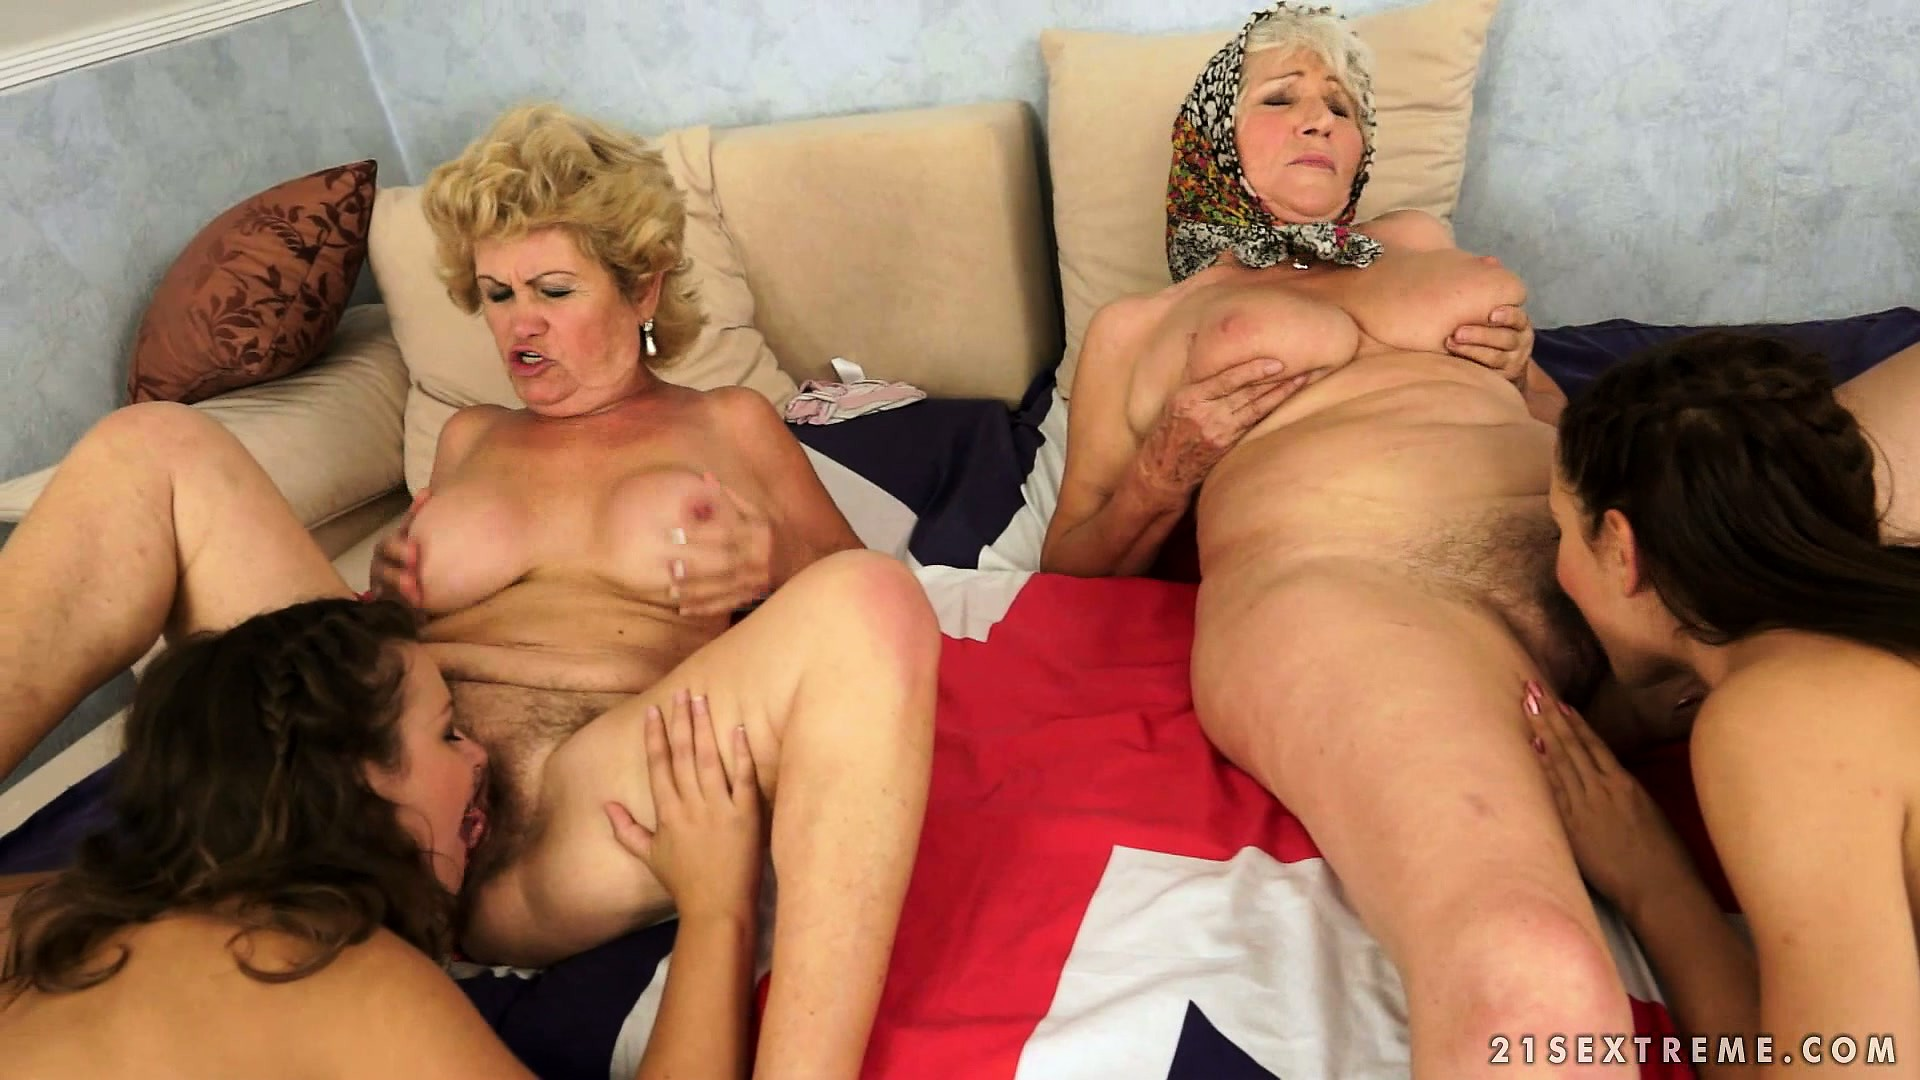 Here not lesbian orgy link